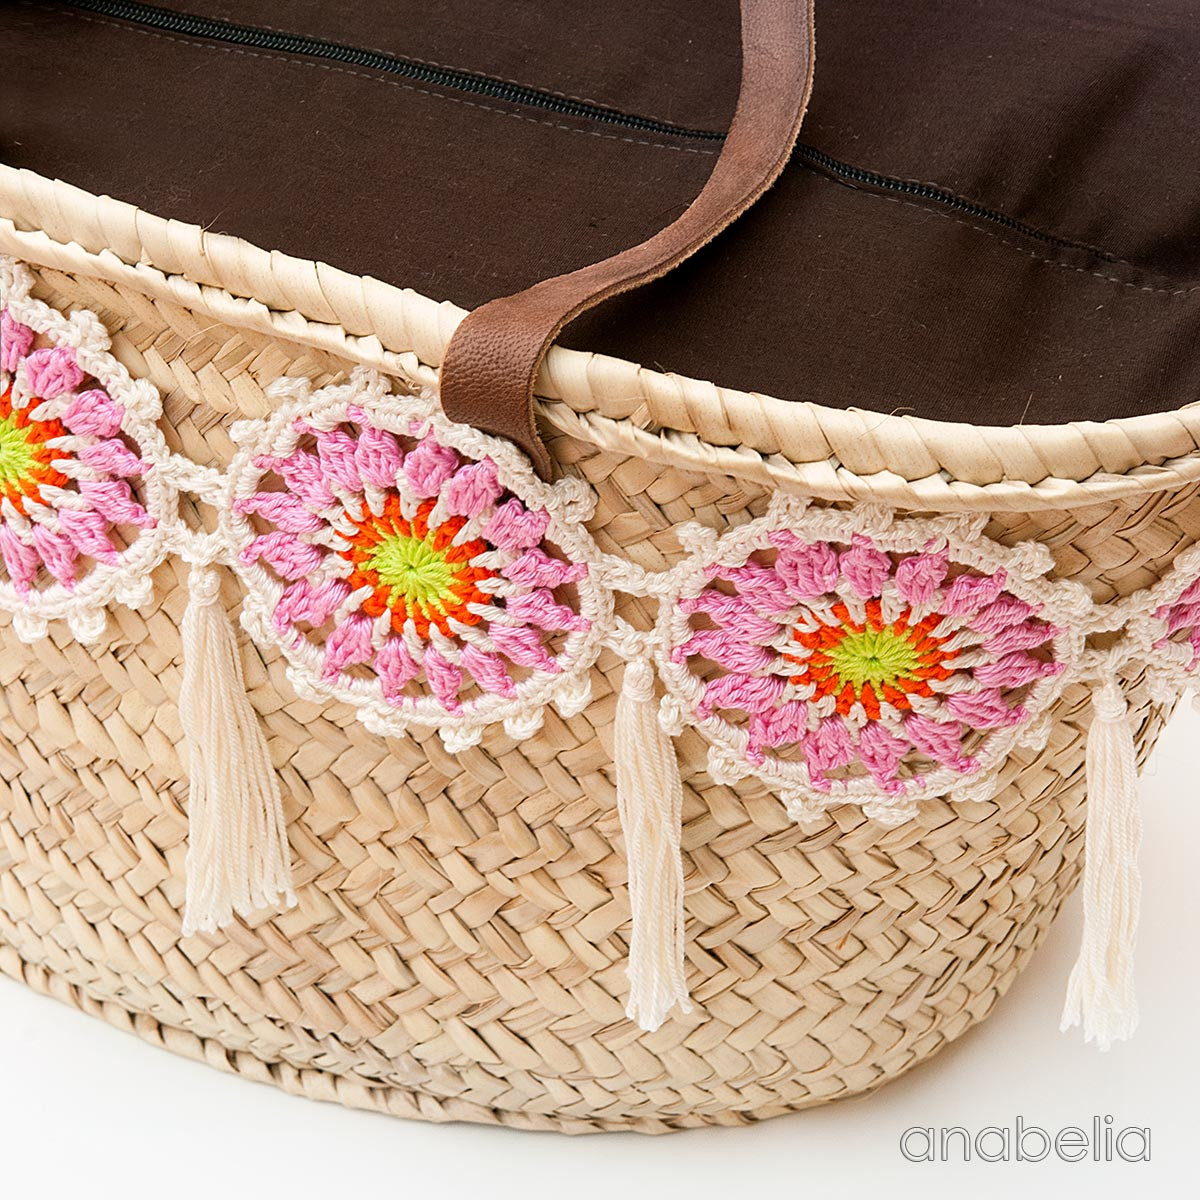 Summer Crochet Inspirational Anabelia Craft Design How to Decorate A Summer Bag with Of Awesome 43 Ideas Summer Crochet